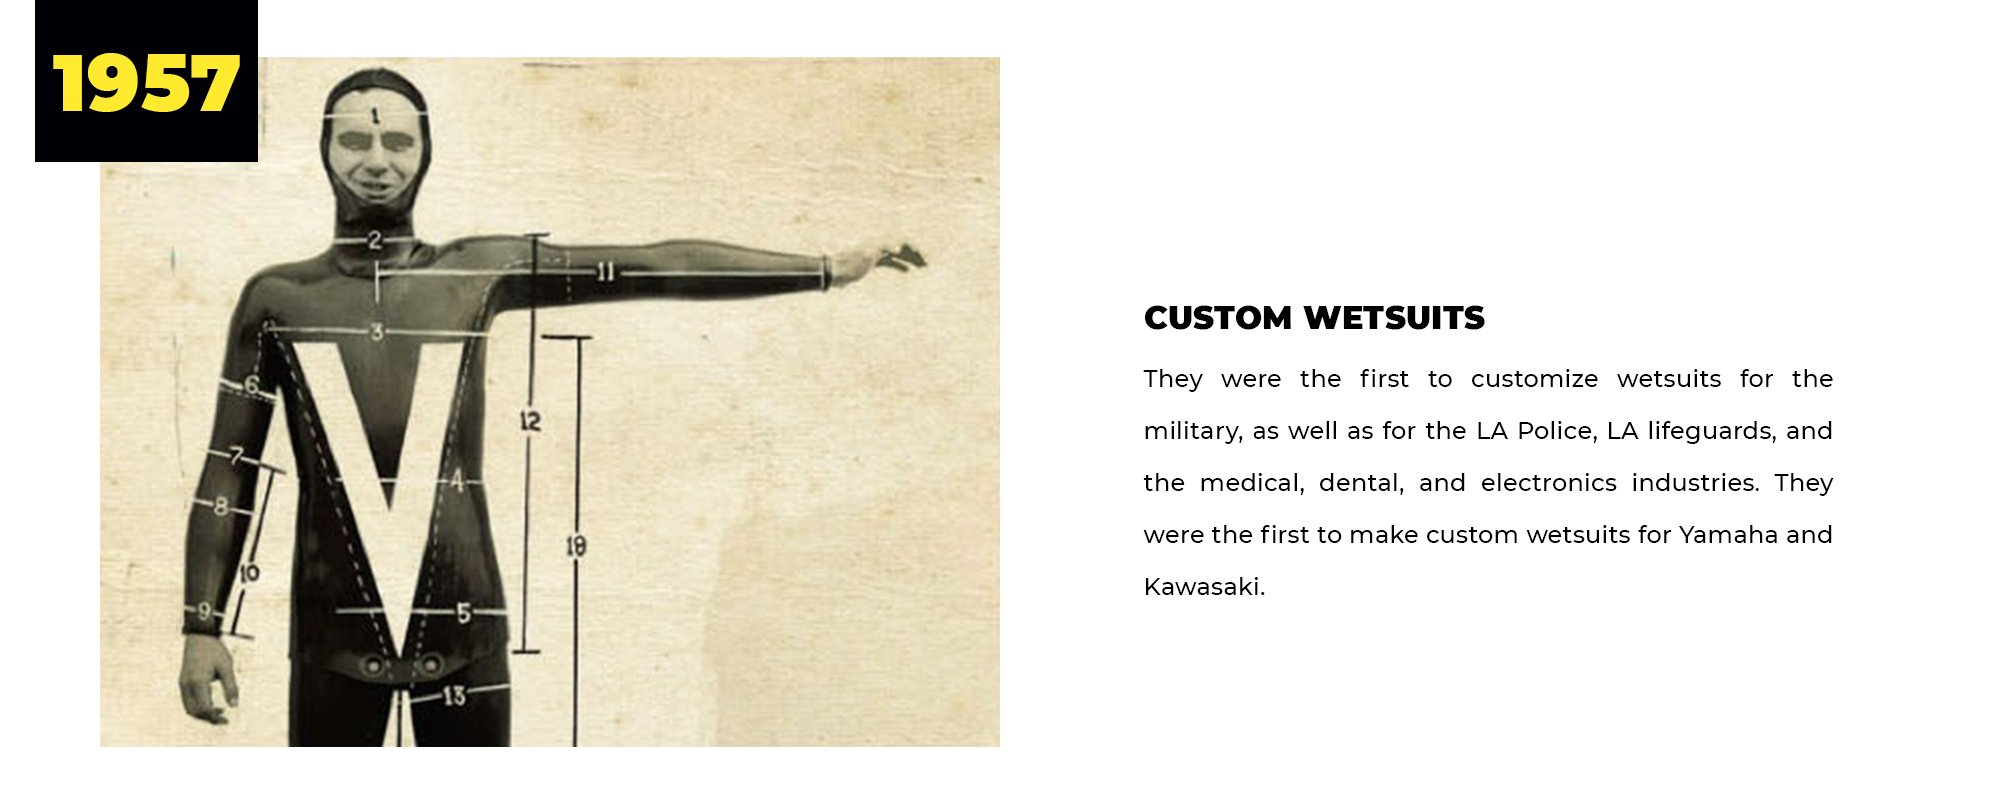 1957 | Custom Wetsuits | They were the first to customize wetsuits for the military, as well as for the LA Police, LA lifeguards, and the medical, dental, and electronics industries. They were the first to make custom wetsuits for Yamaha and Kawasaki.